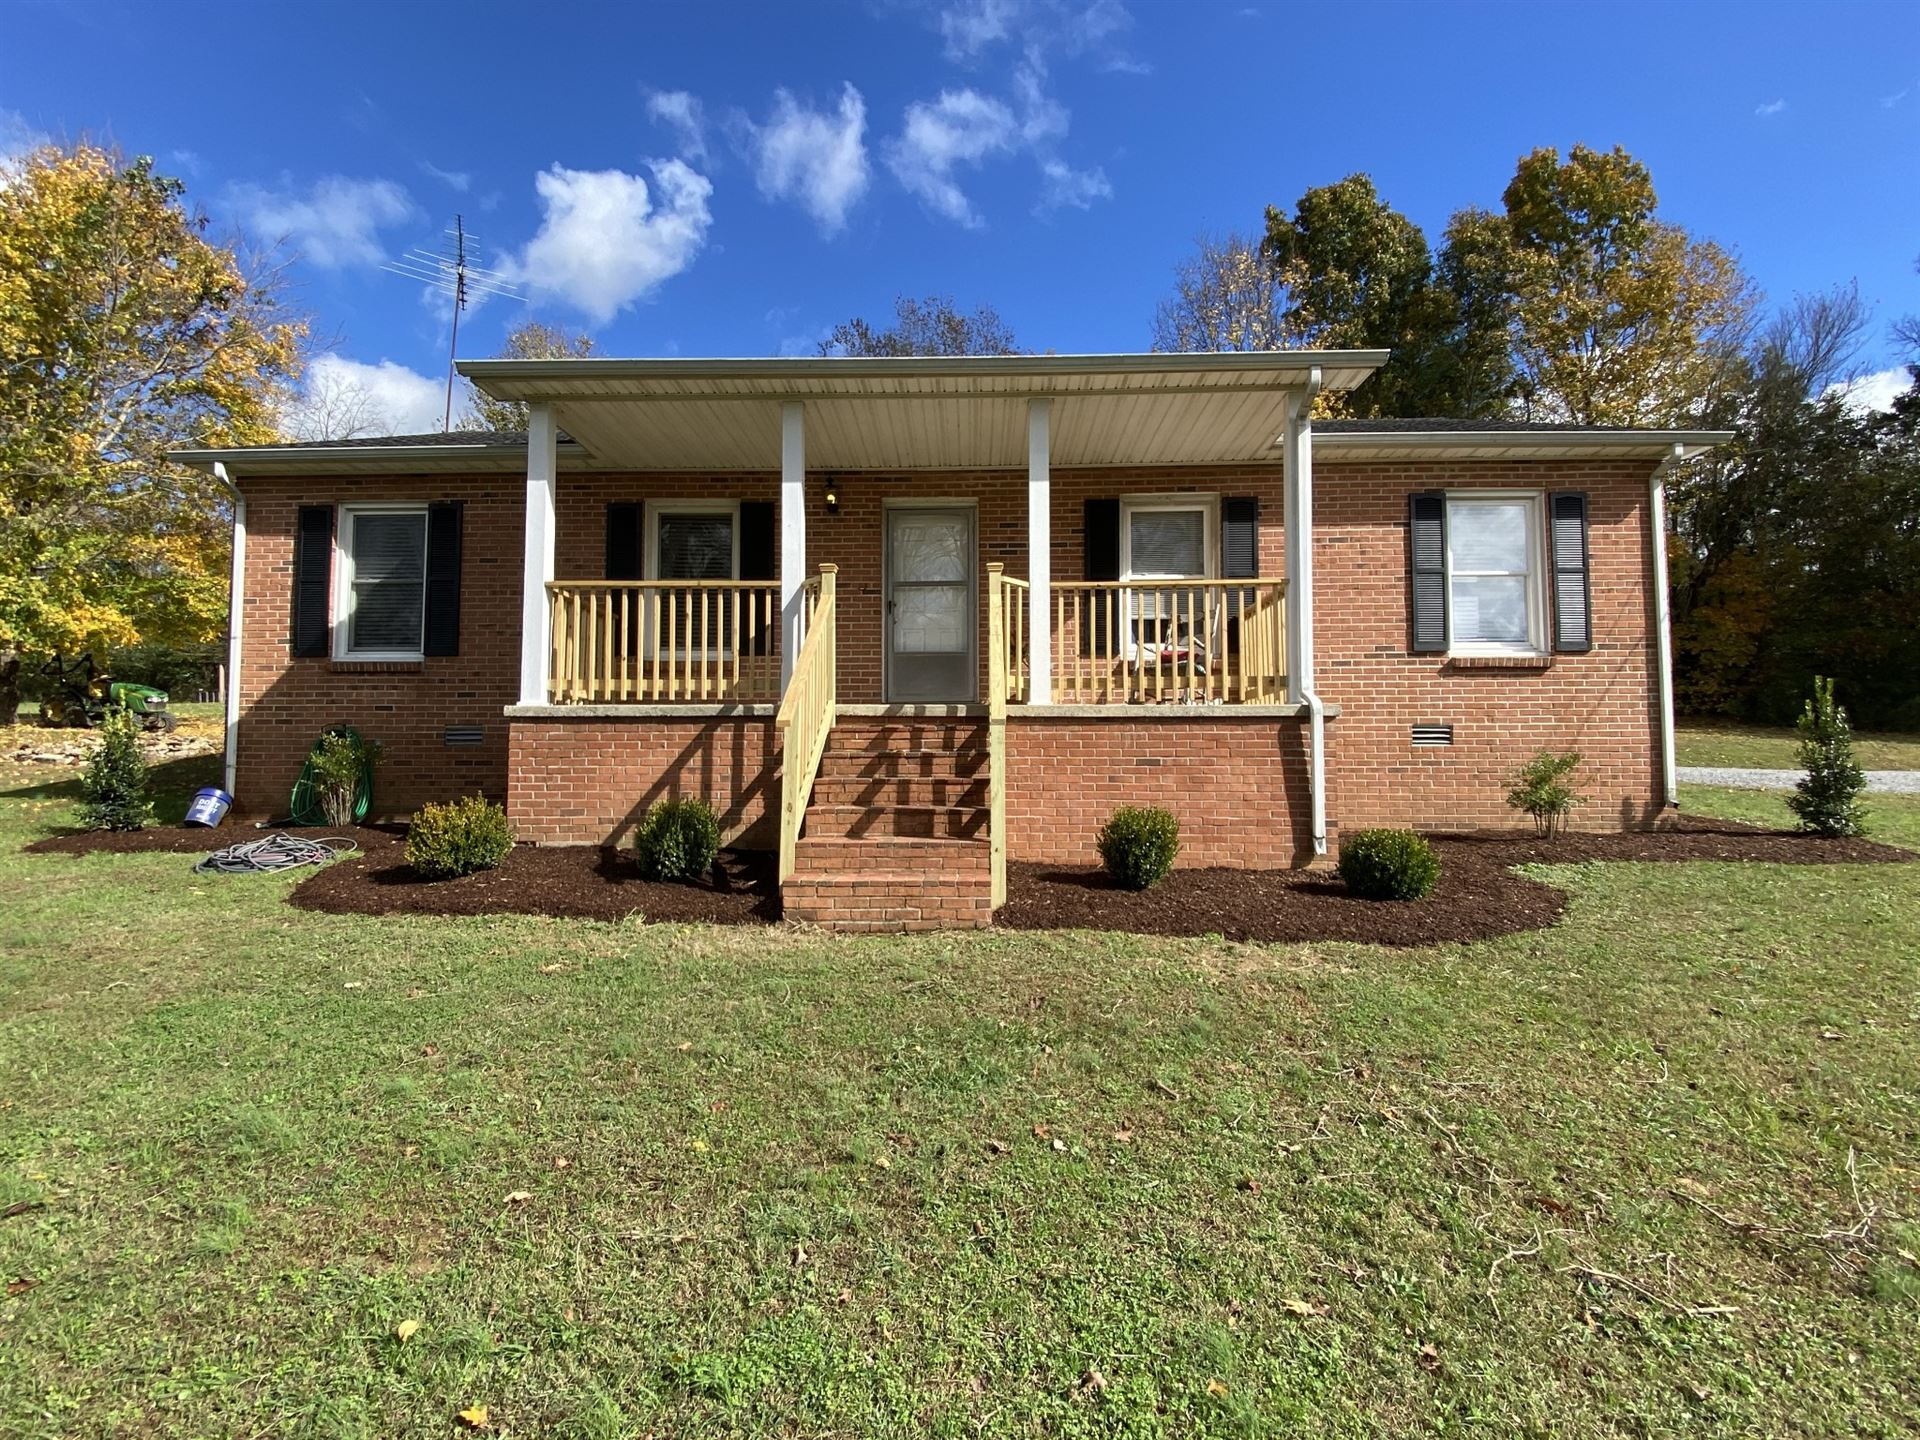 325 Clyde Wix Rd, Westmoreland, TN 37186 - MLS#: 2198608